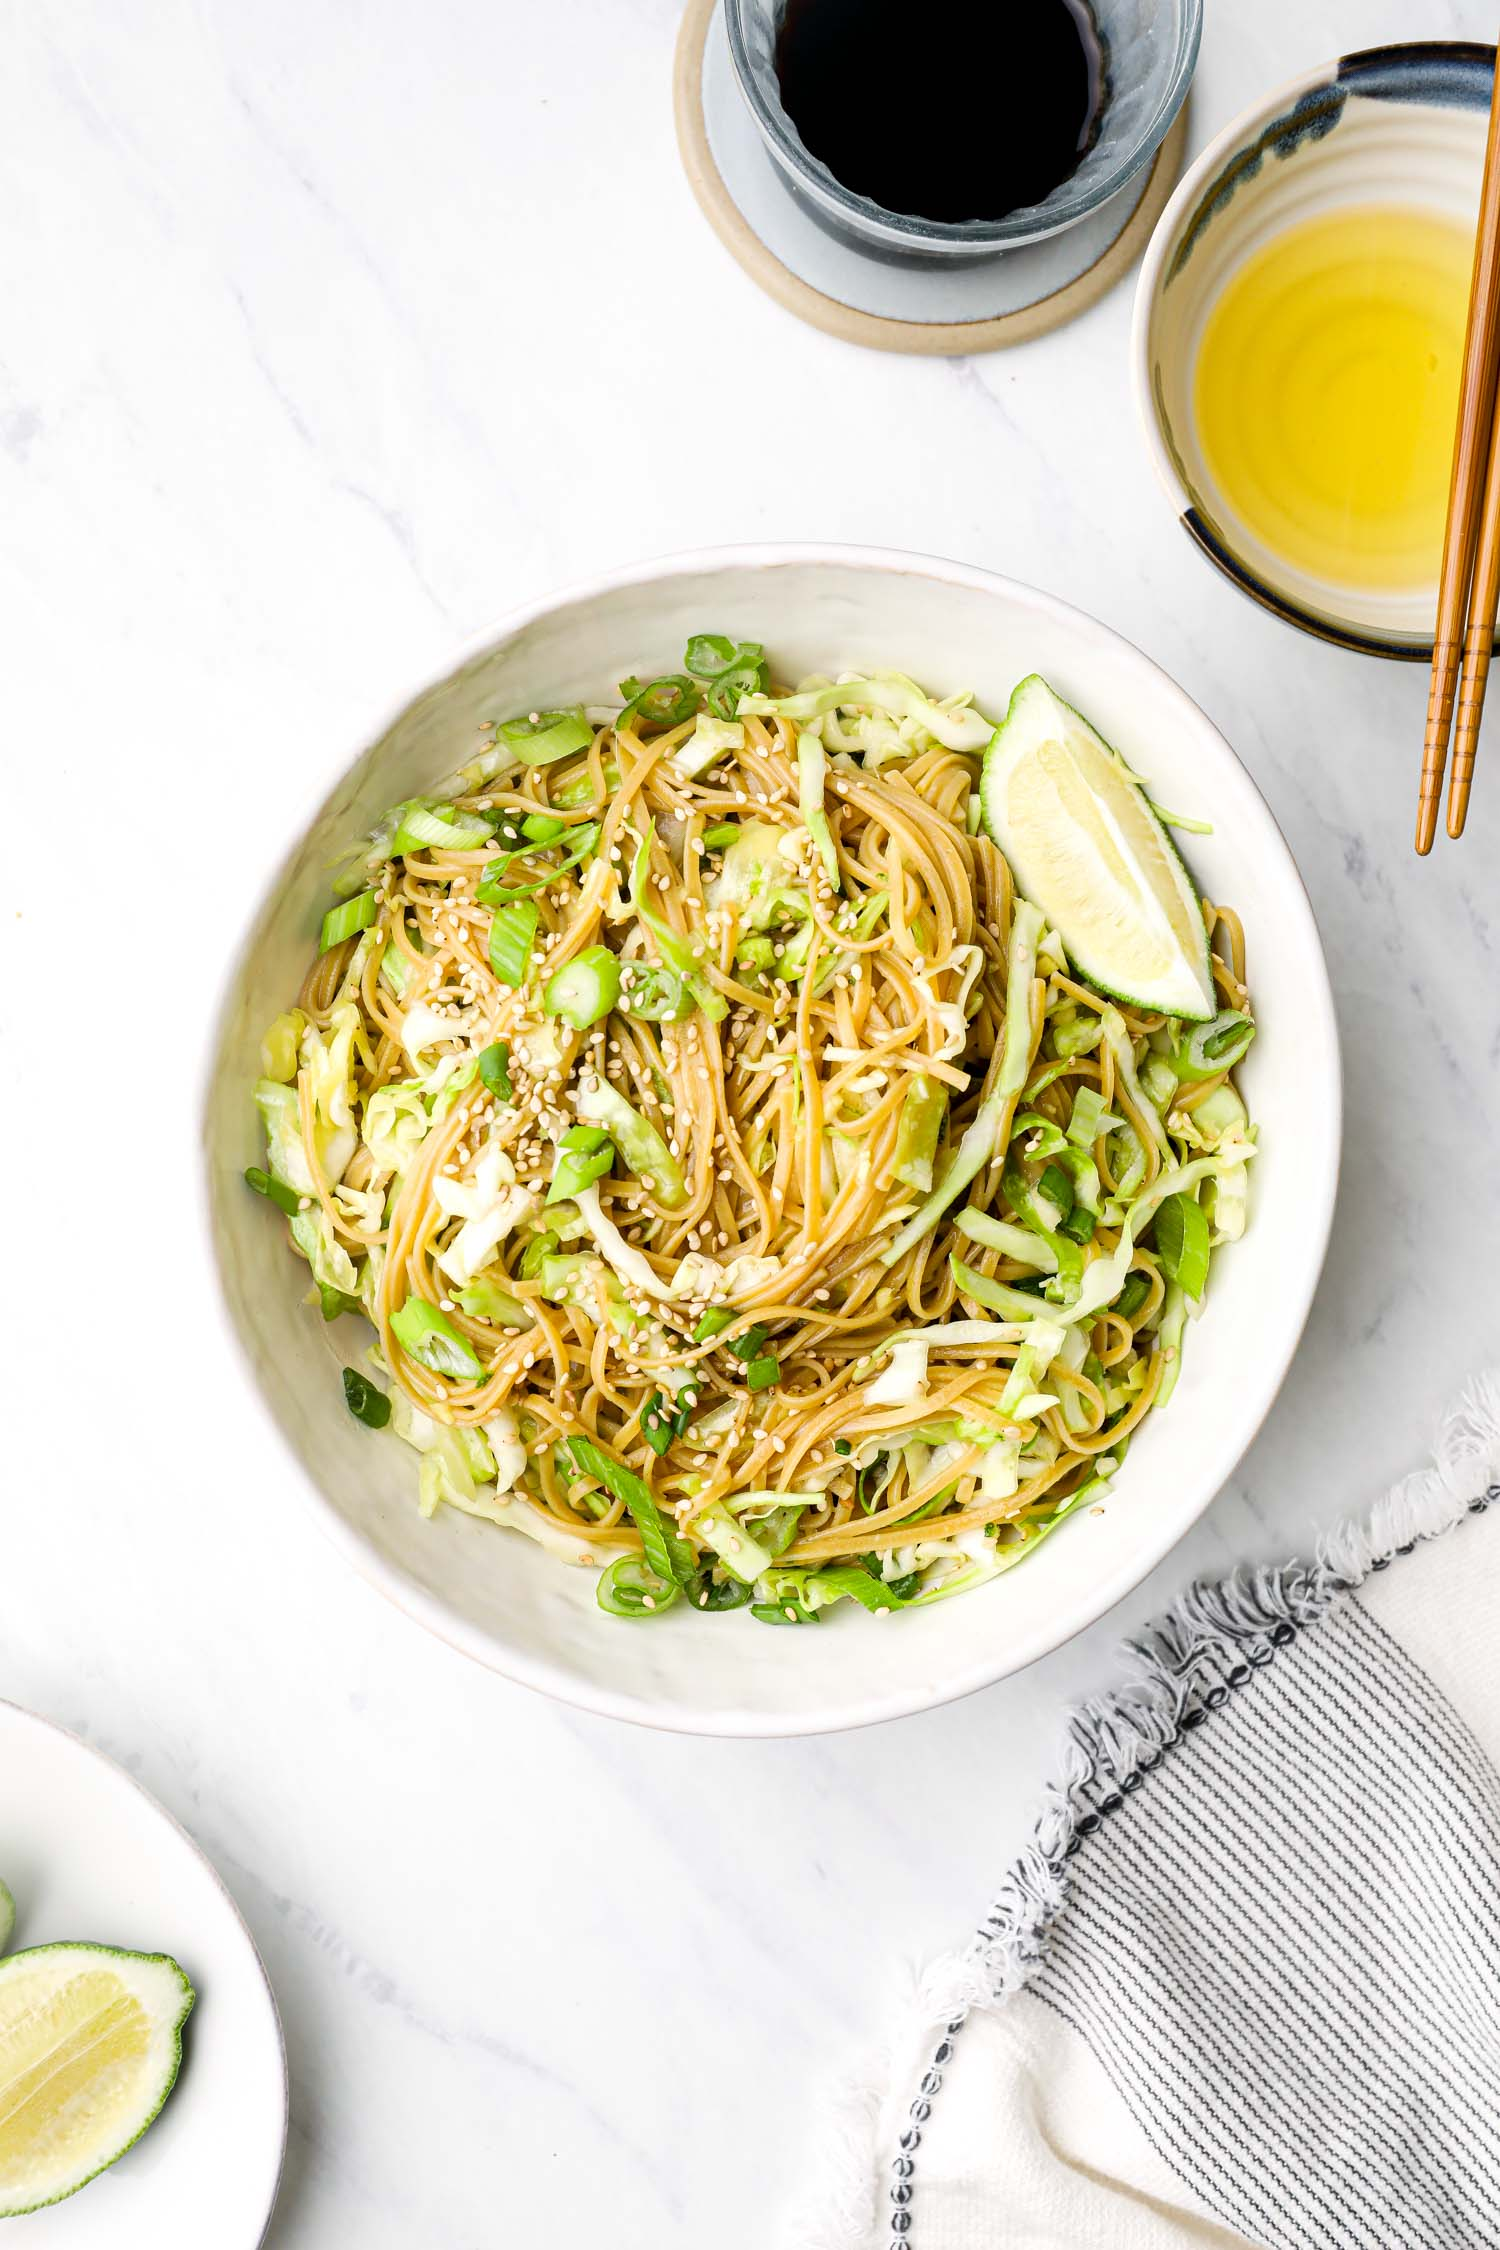 Gluten free Sesame Cabbage Noodles in a white bowl with lime.